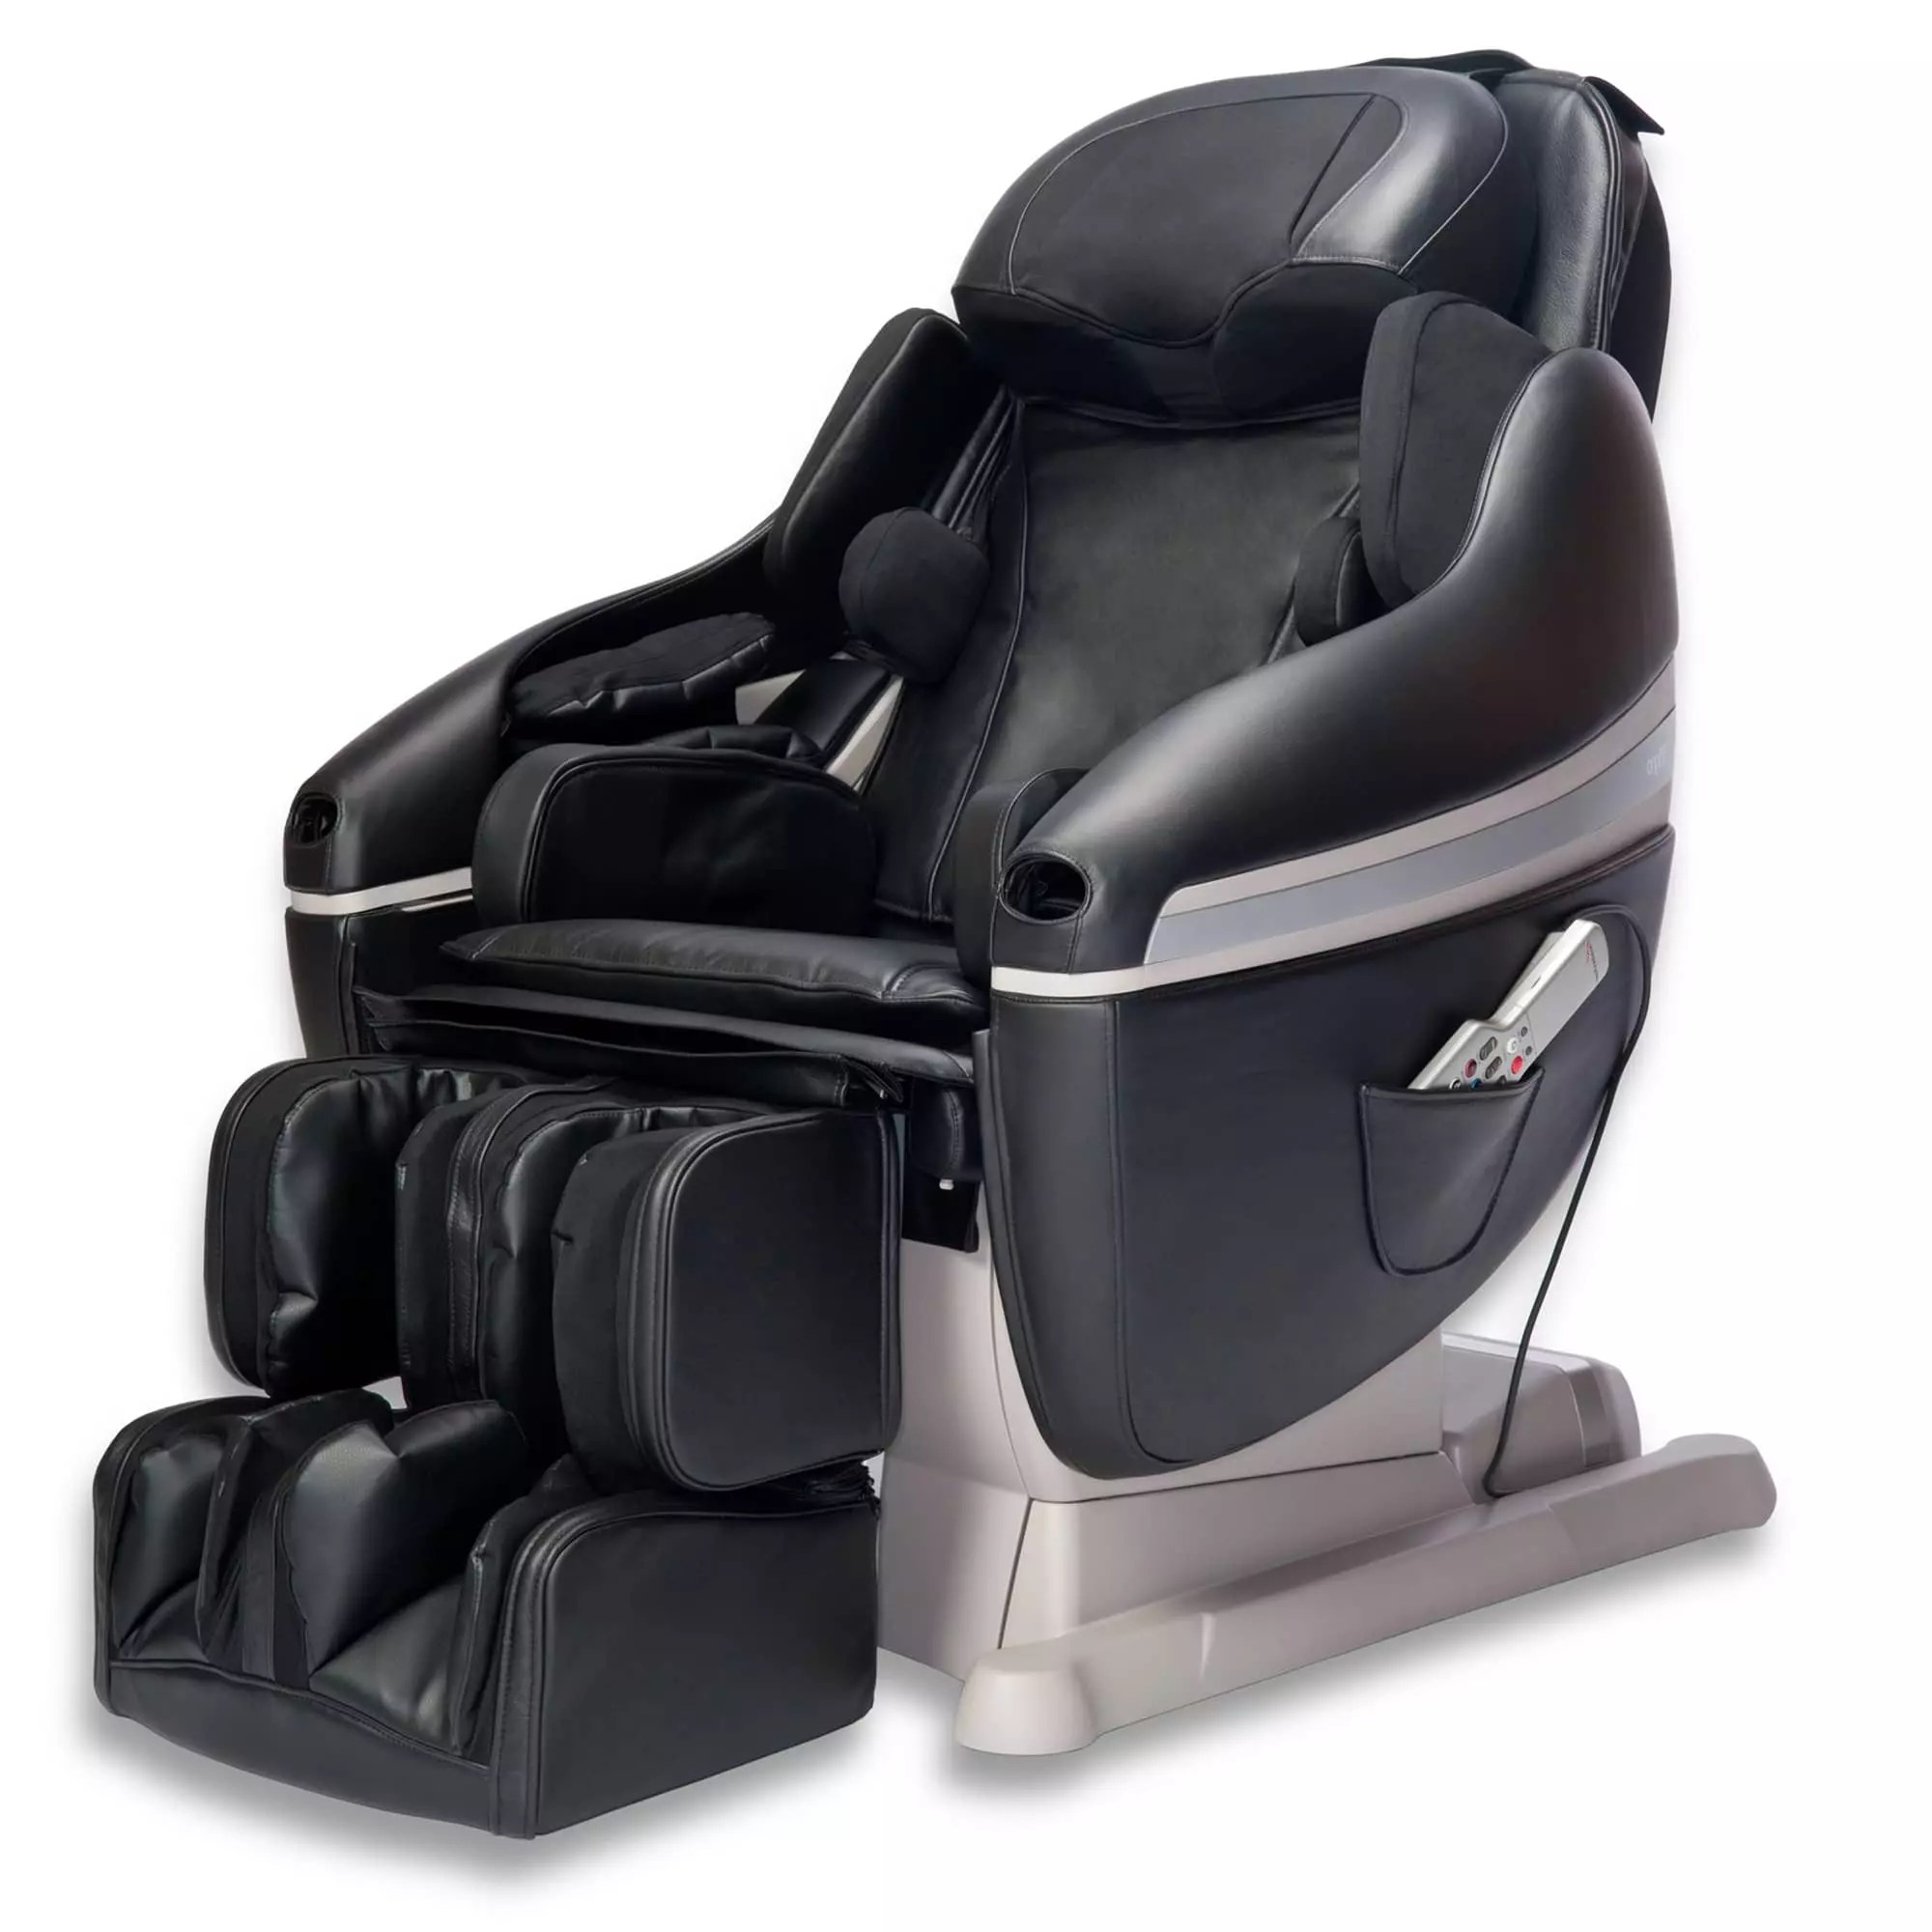 Inada Dreamwave Massage Chair Inada Sogno Massage Chair Enhance Natural Healing And